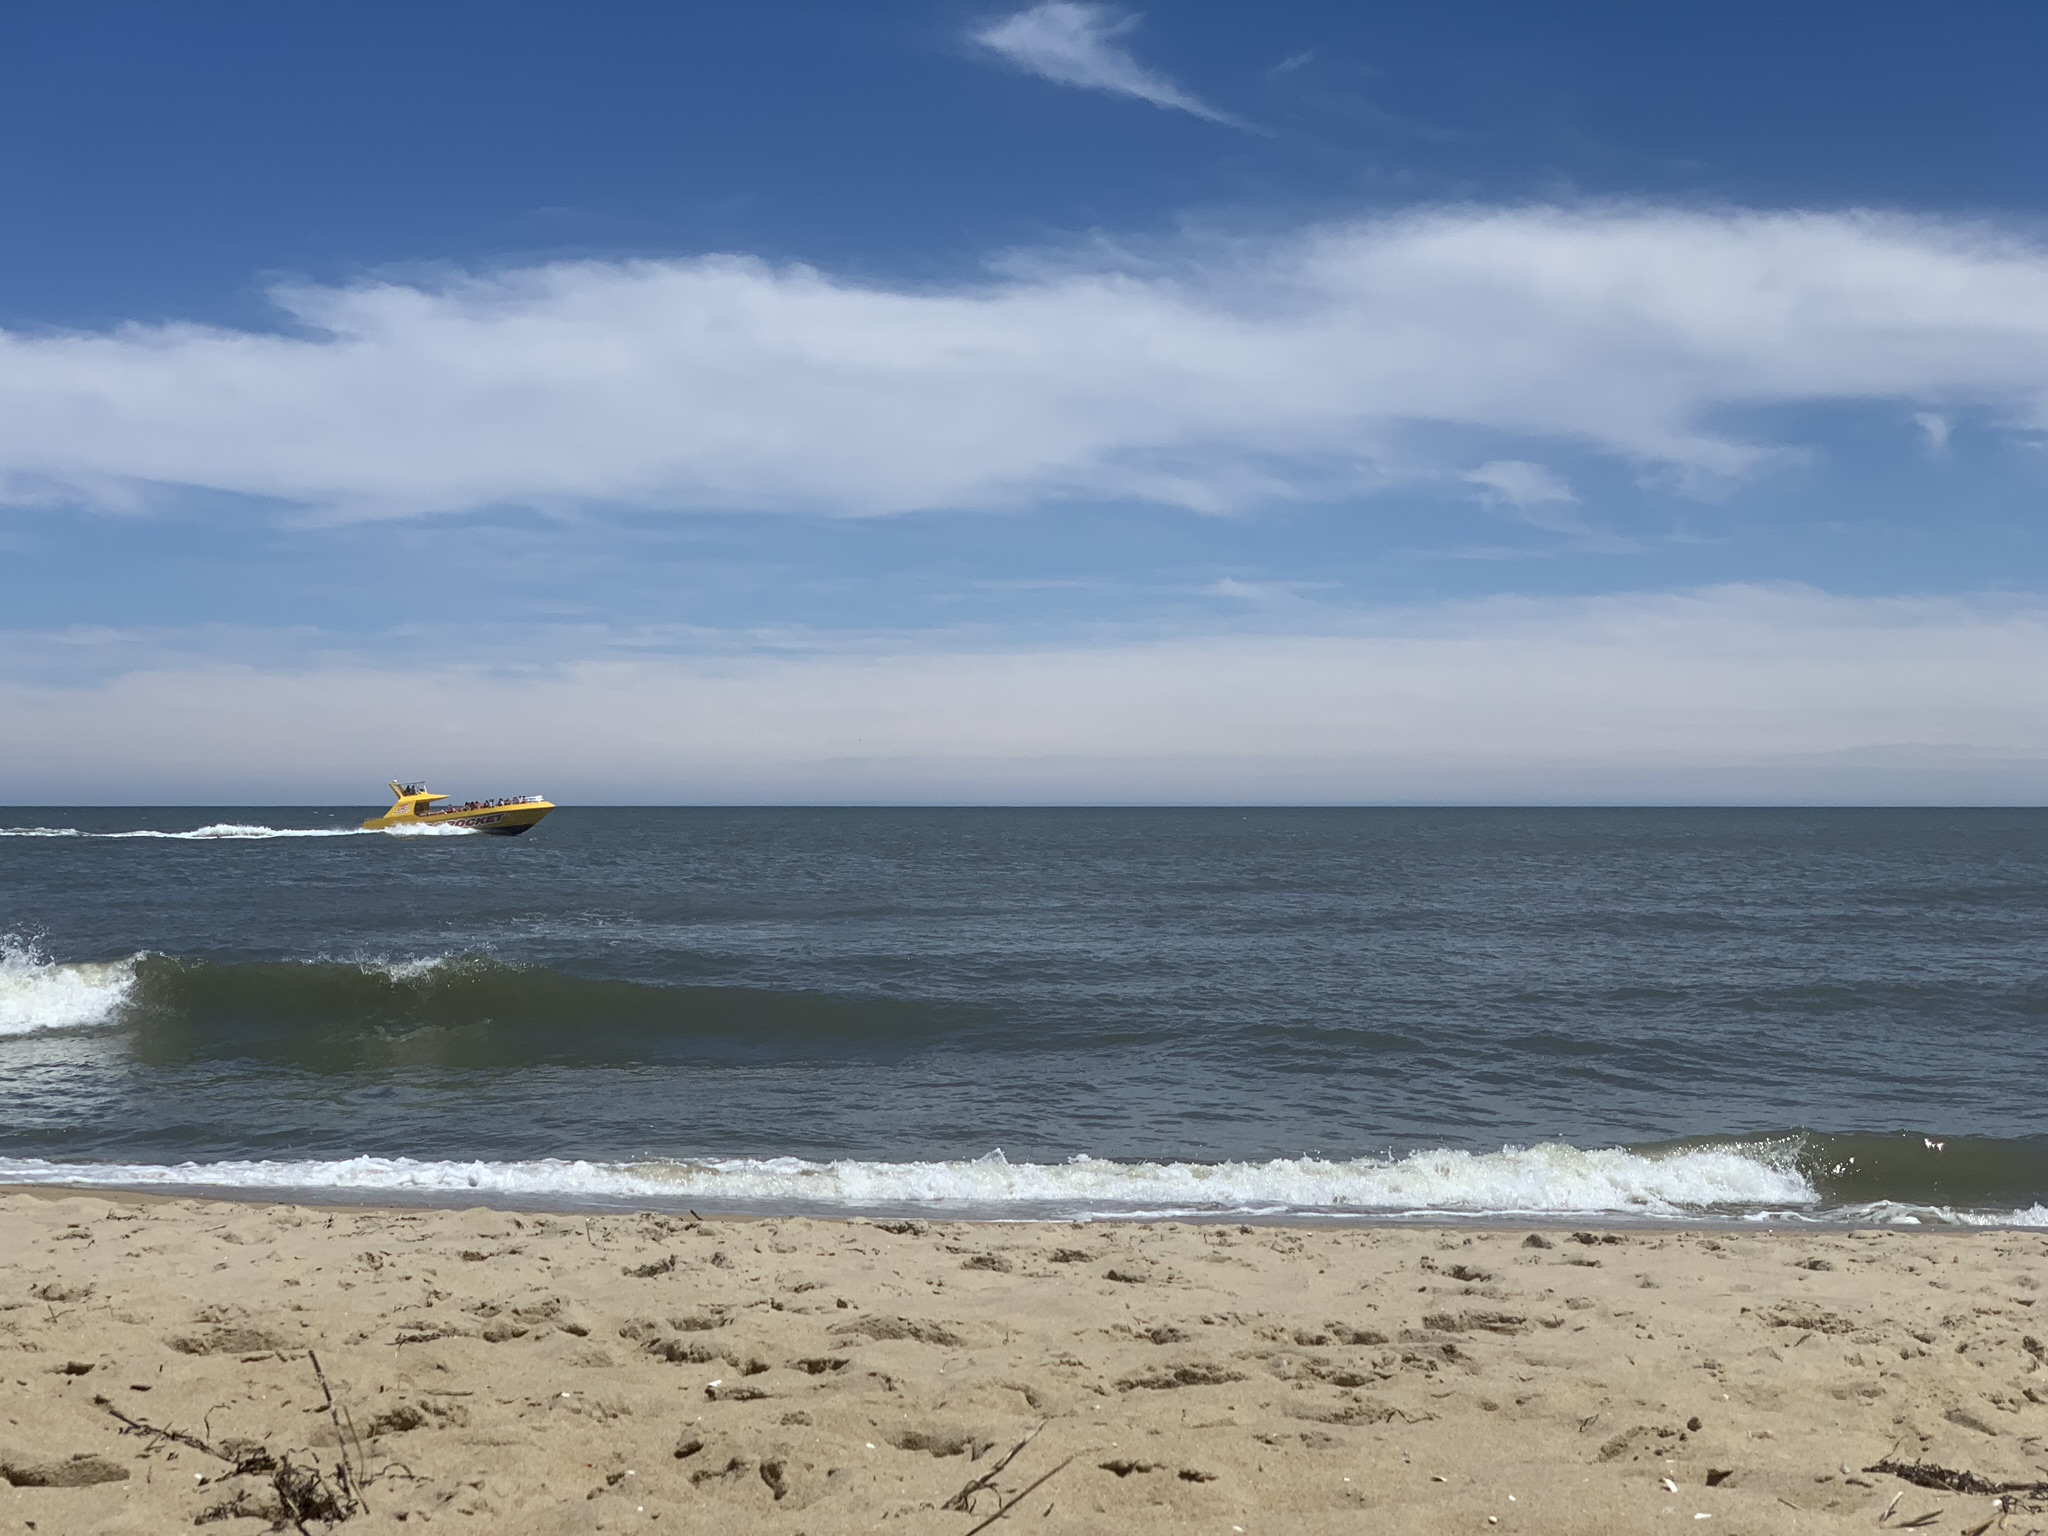 In the dog days of summer in Ocean City, Maryland.